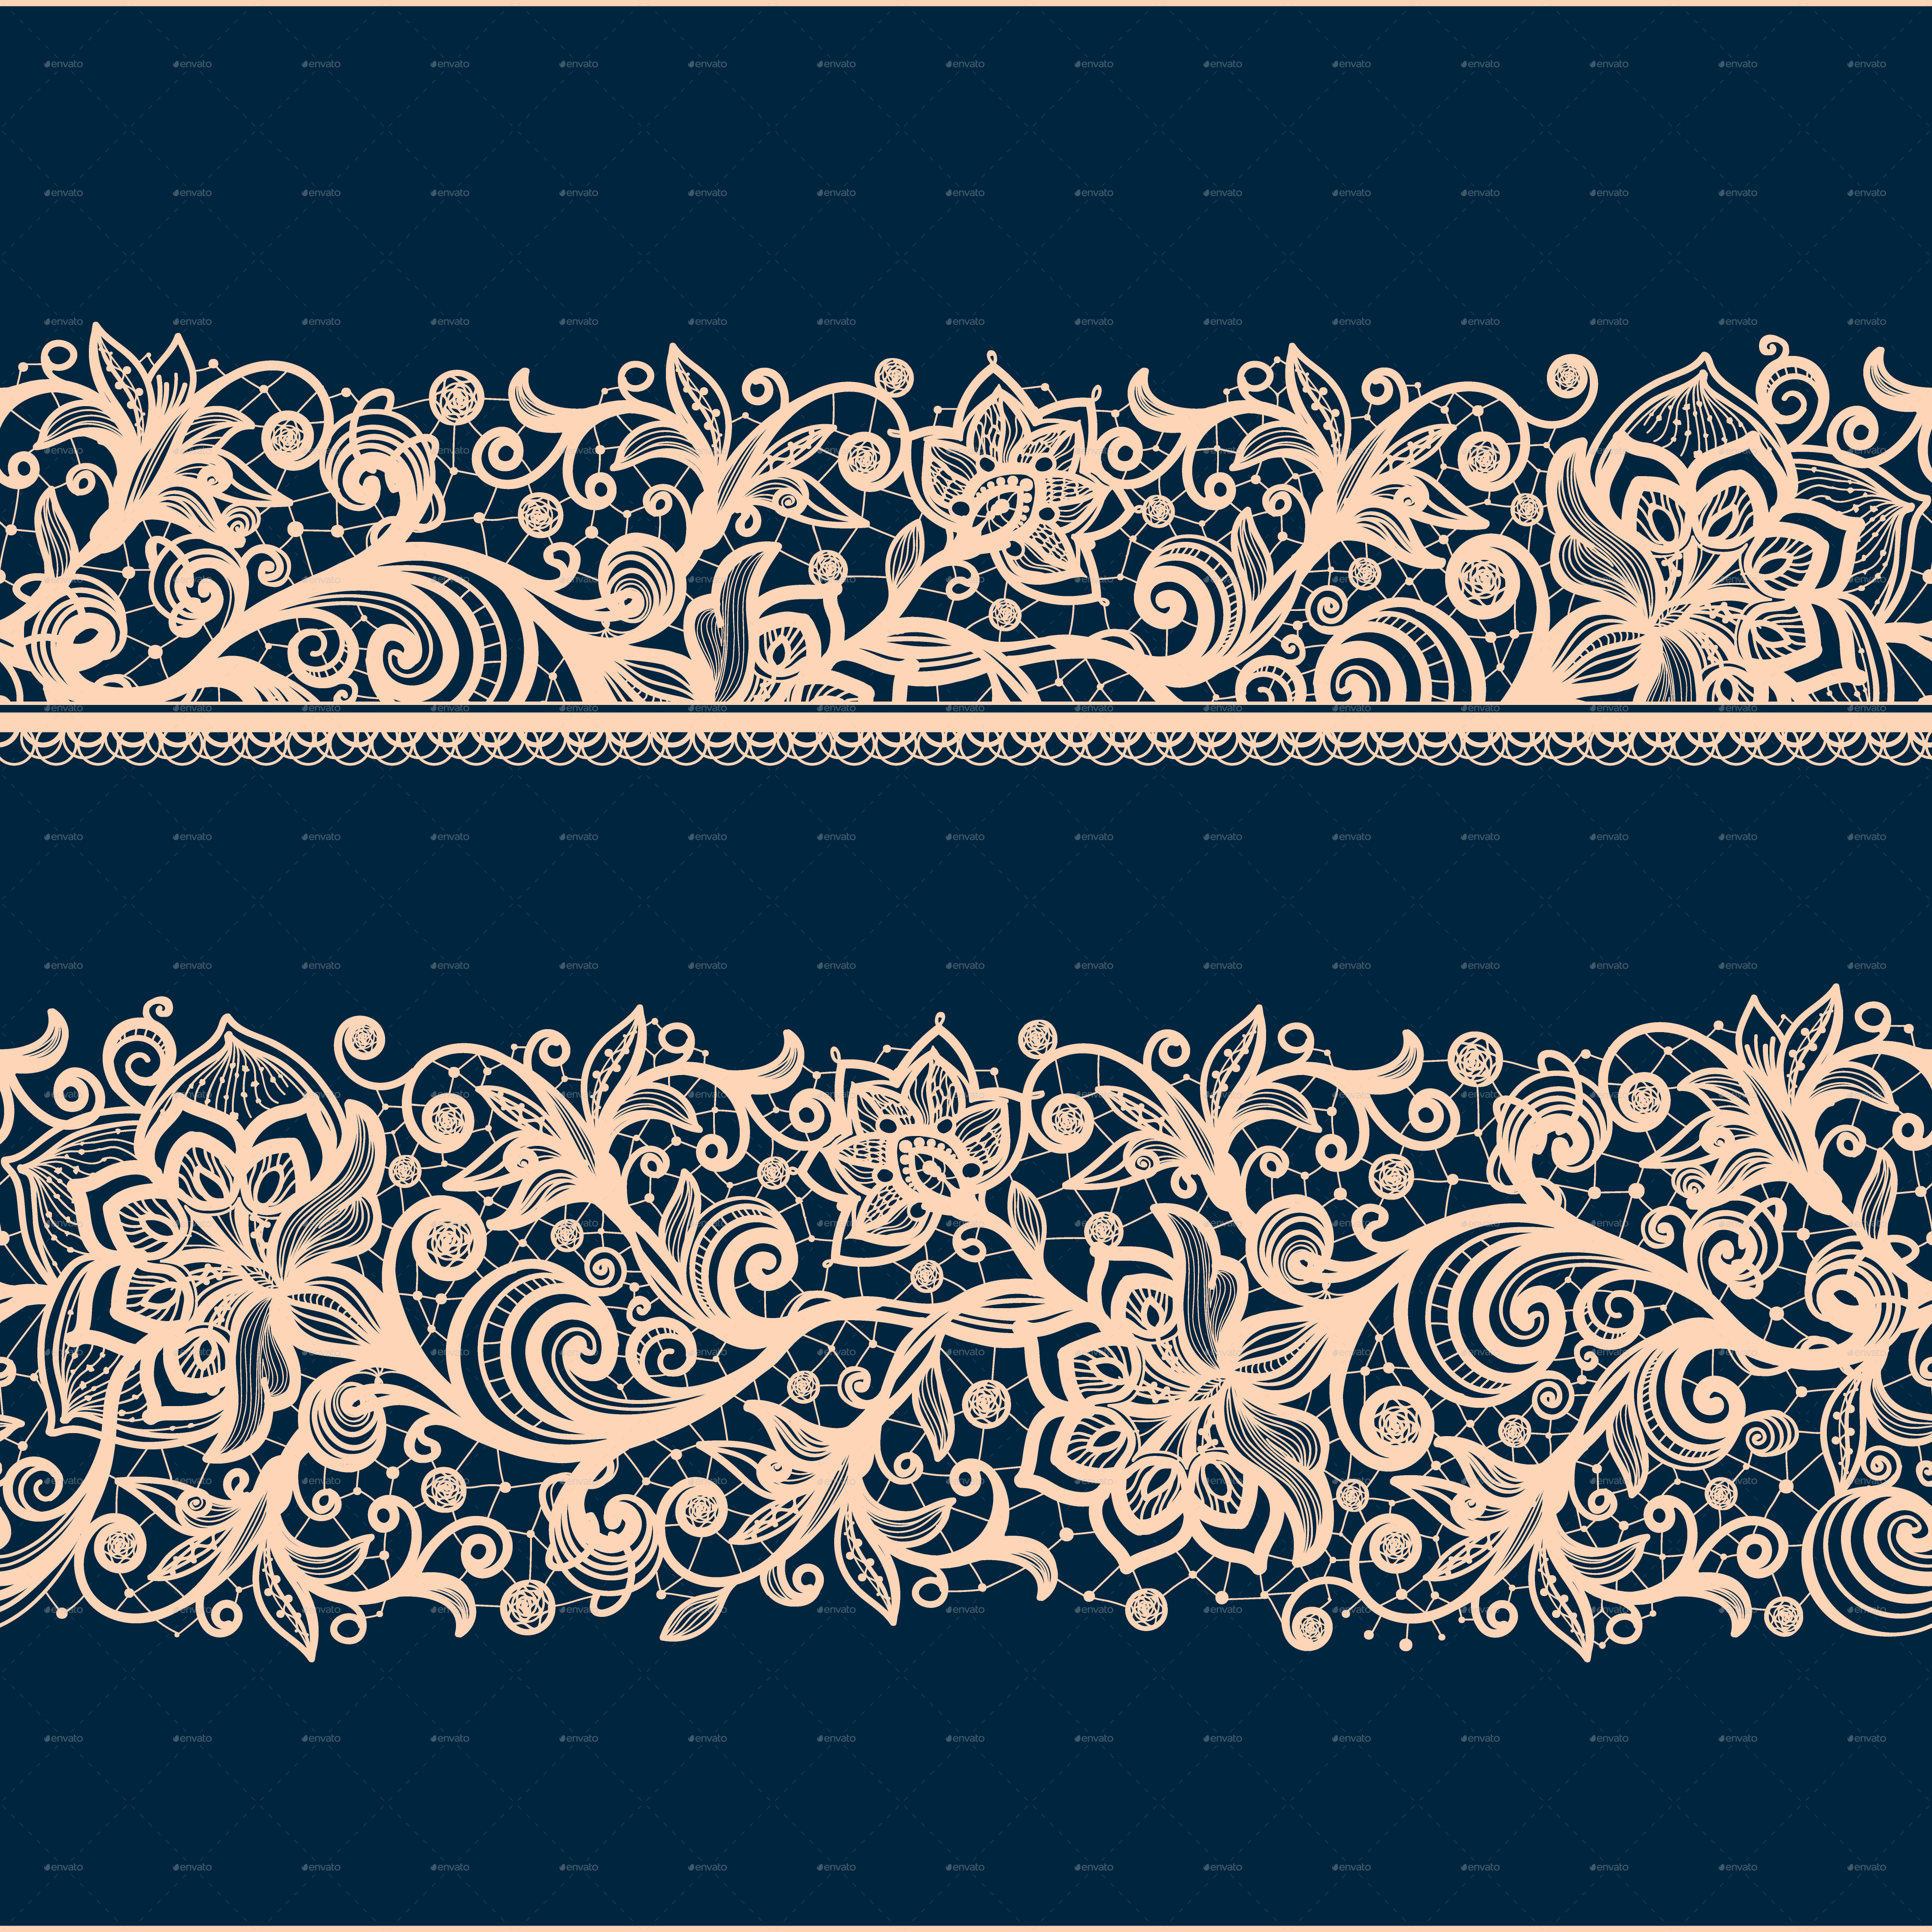 Seamless Lace Pattern with Decorative Flowers. by Vikpit